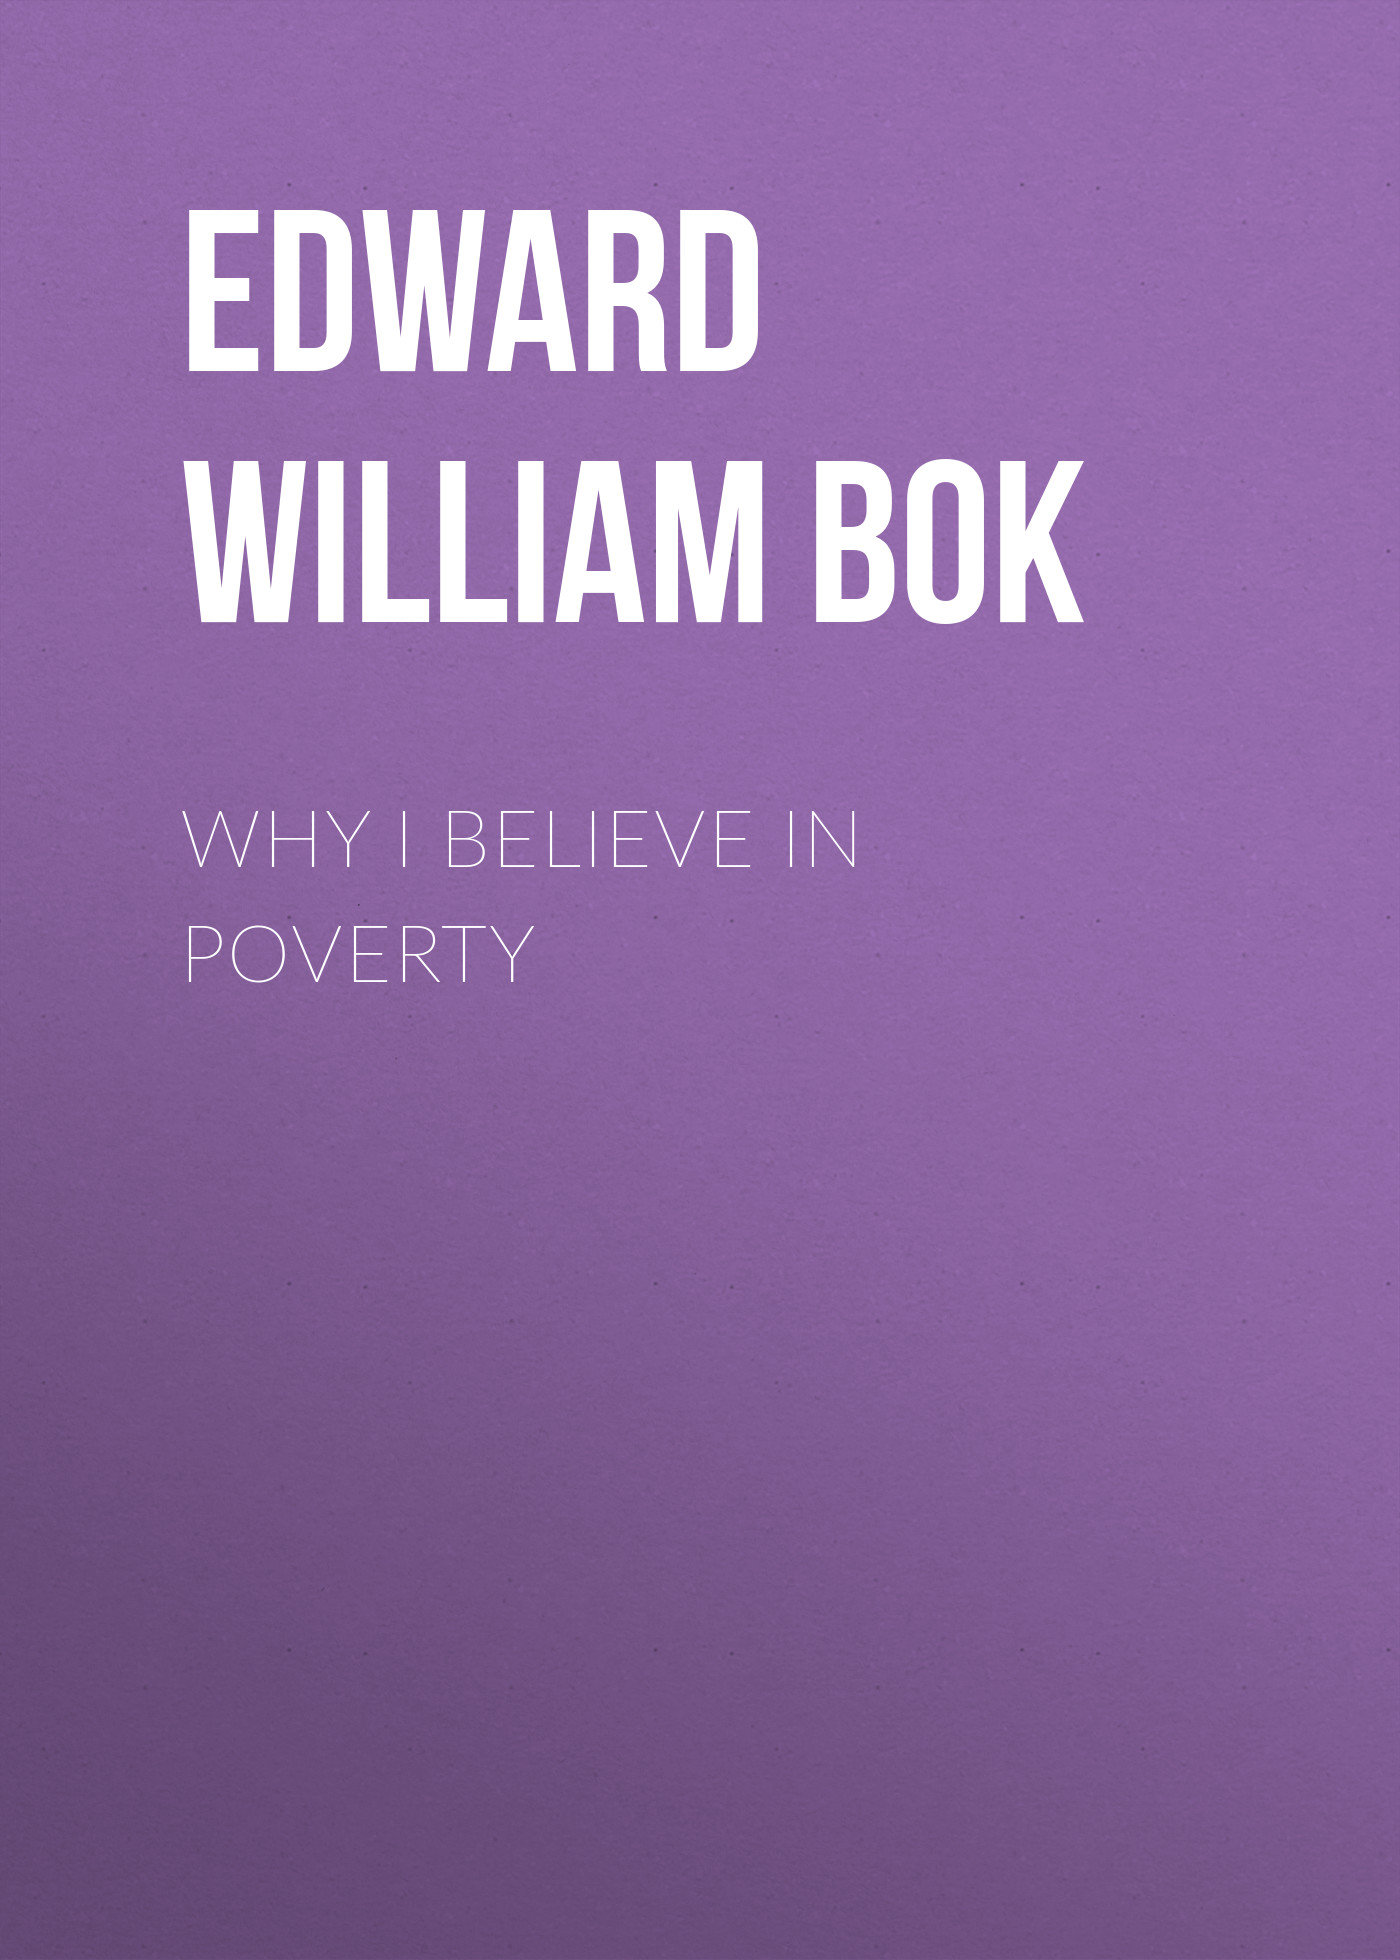 Bok Edward William Why I Believe in Poverty i wonder why spiders spin webs